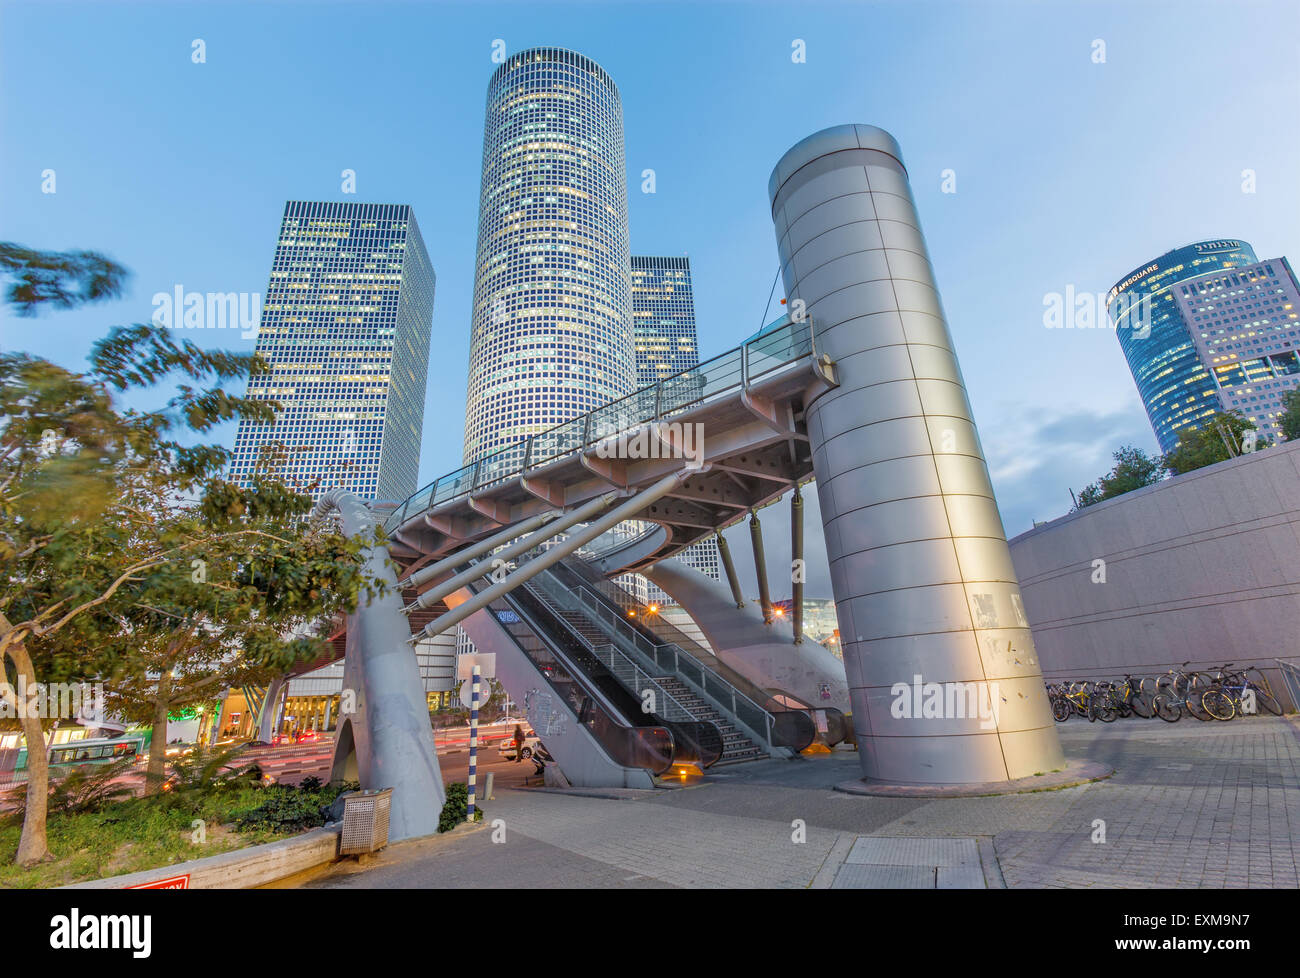 TEL AVIV, ISRAEL - MARCH 2, 2015: The skyscrapers of Azrieli Center in evening dusk by Moore Yaski Sivan Architects - Stock Image